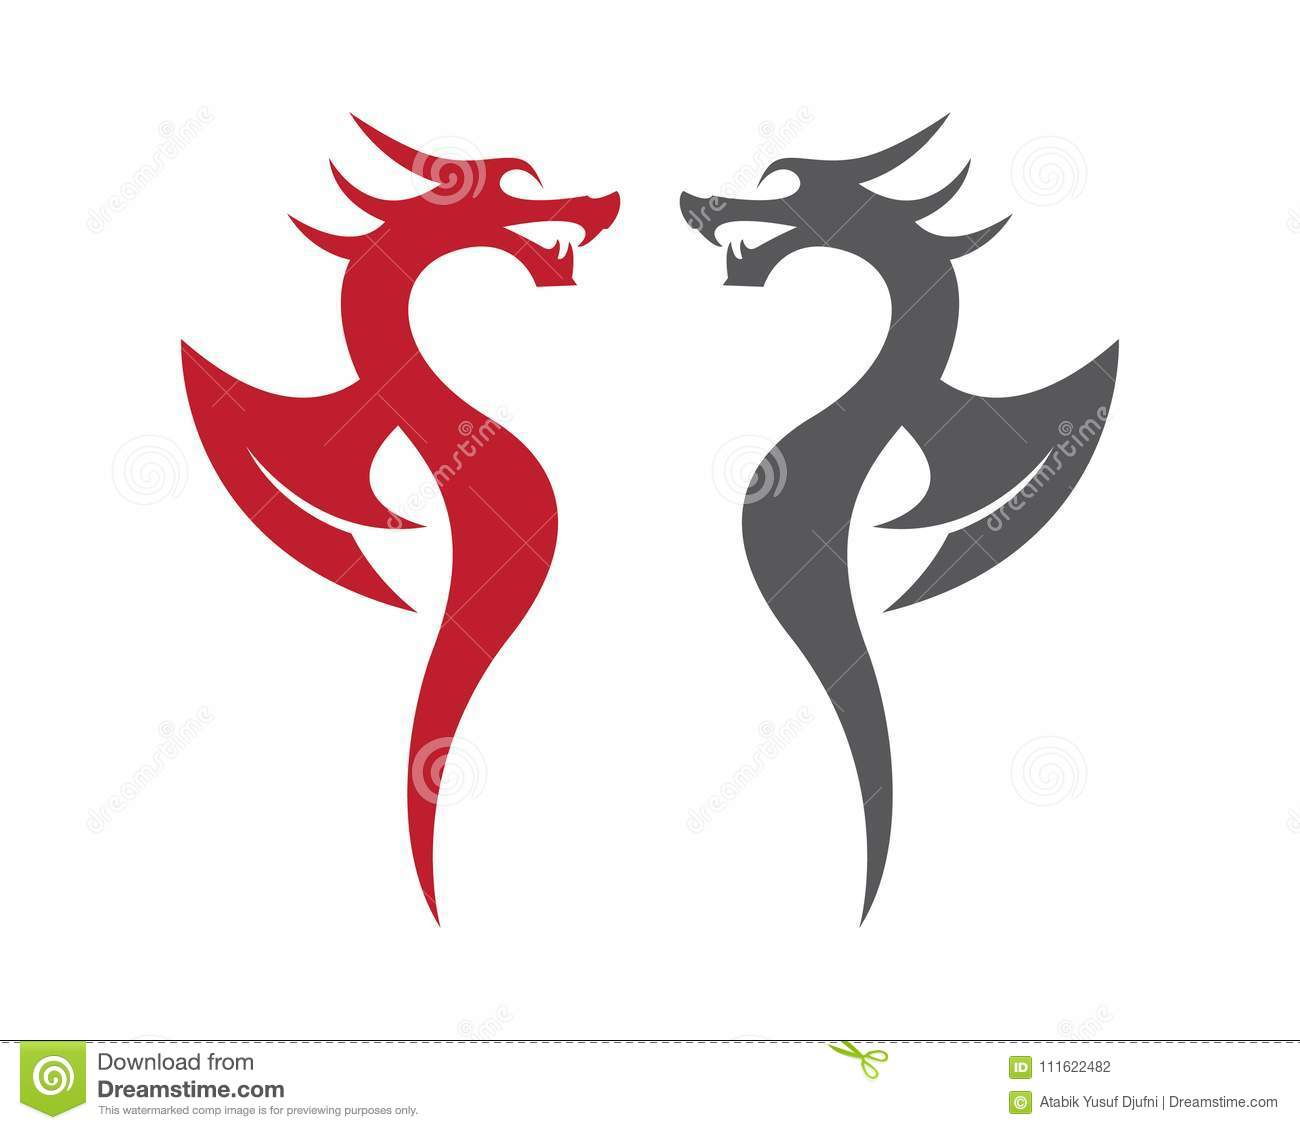 Dragon vector icon stock vector. Illustration of china - 111622482